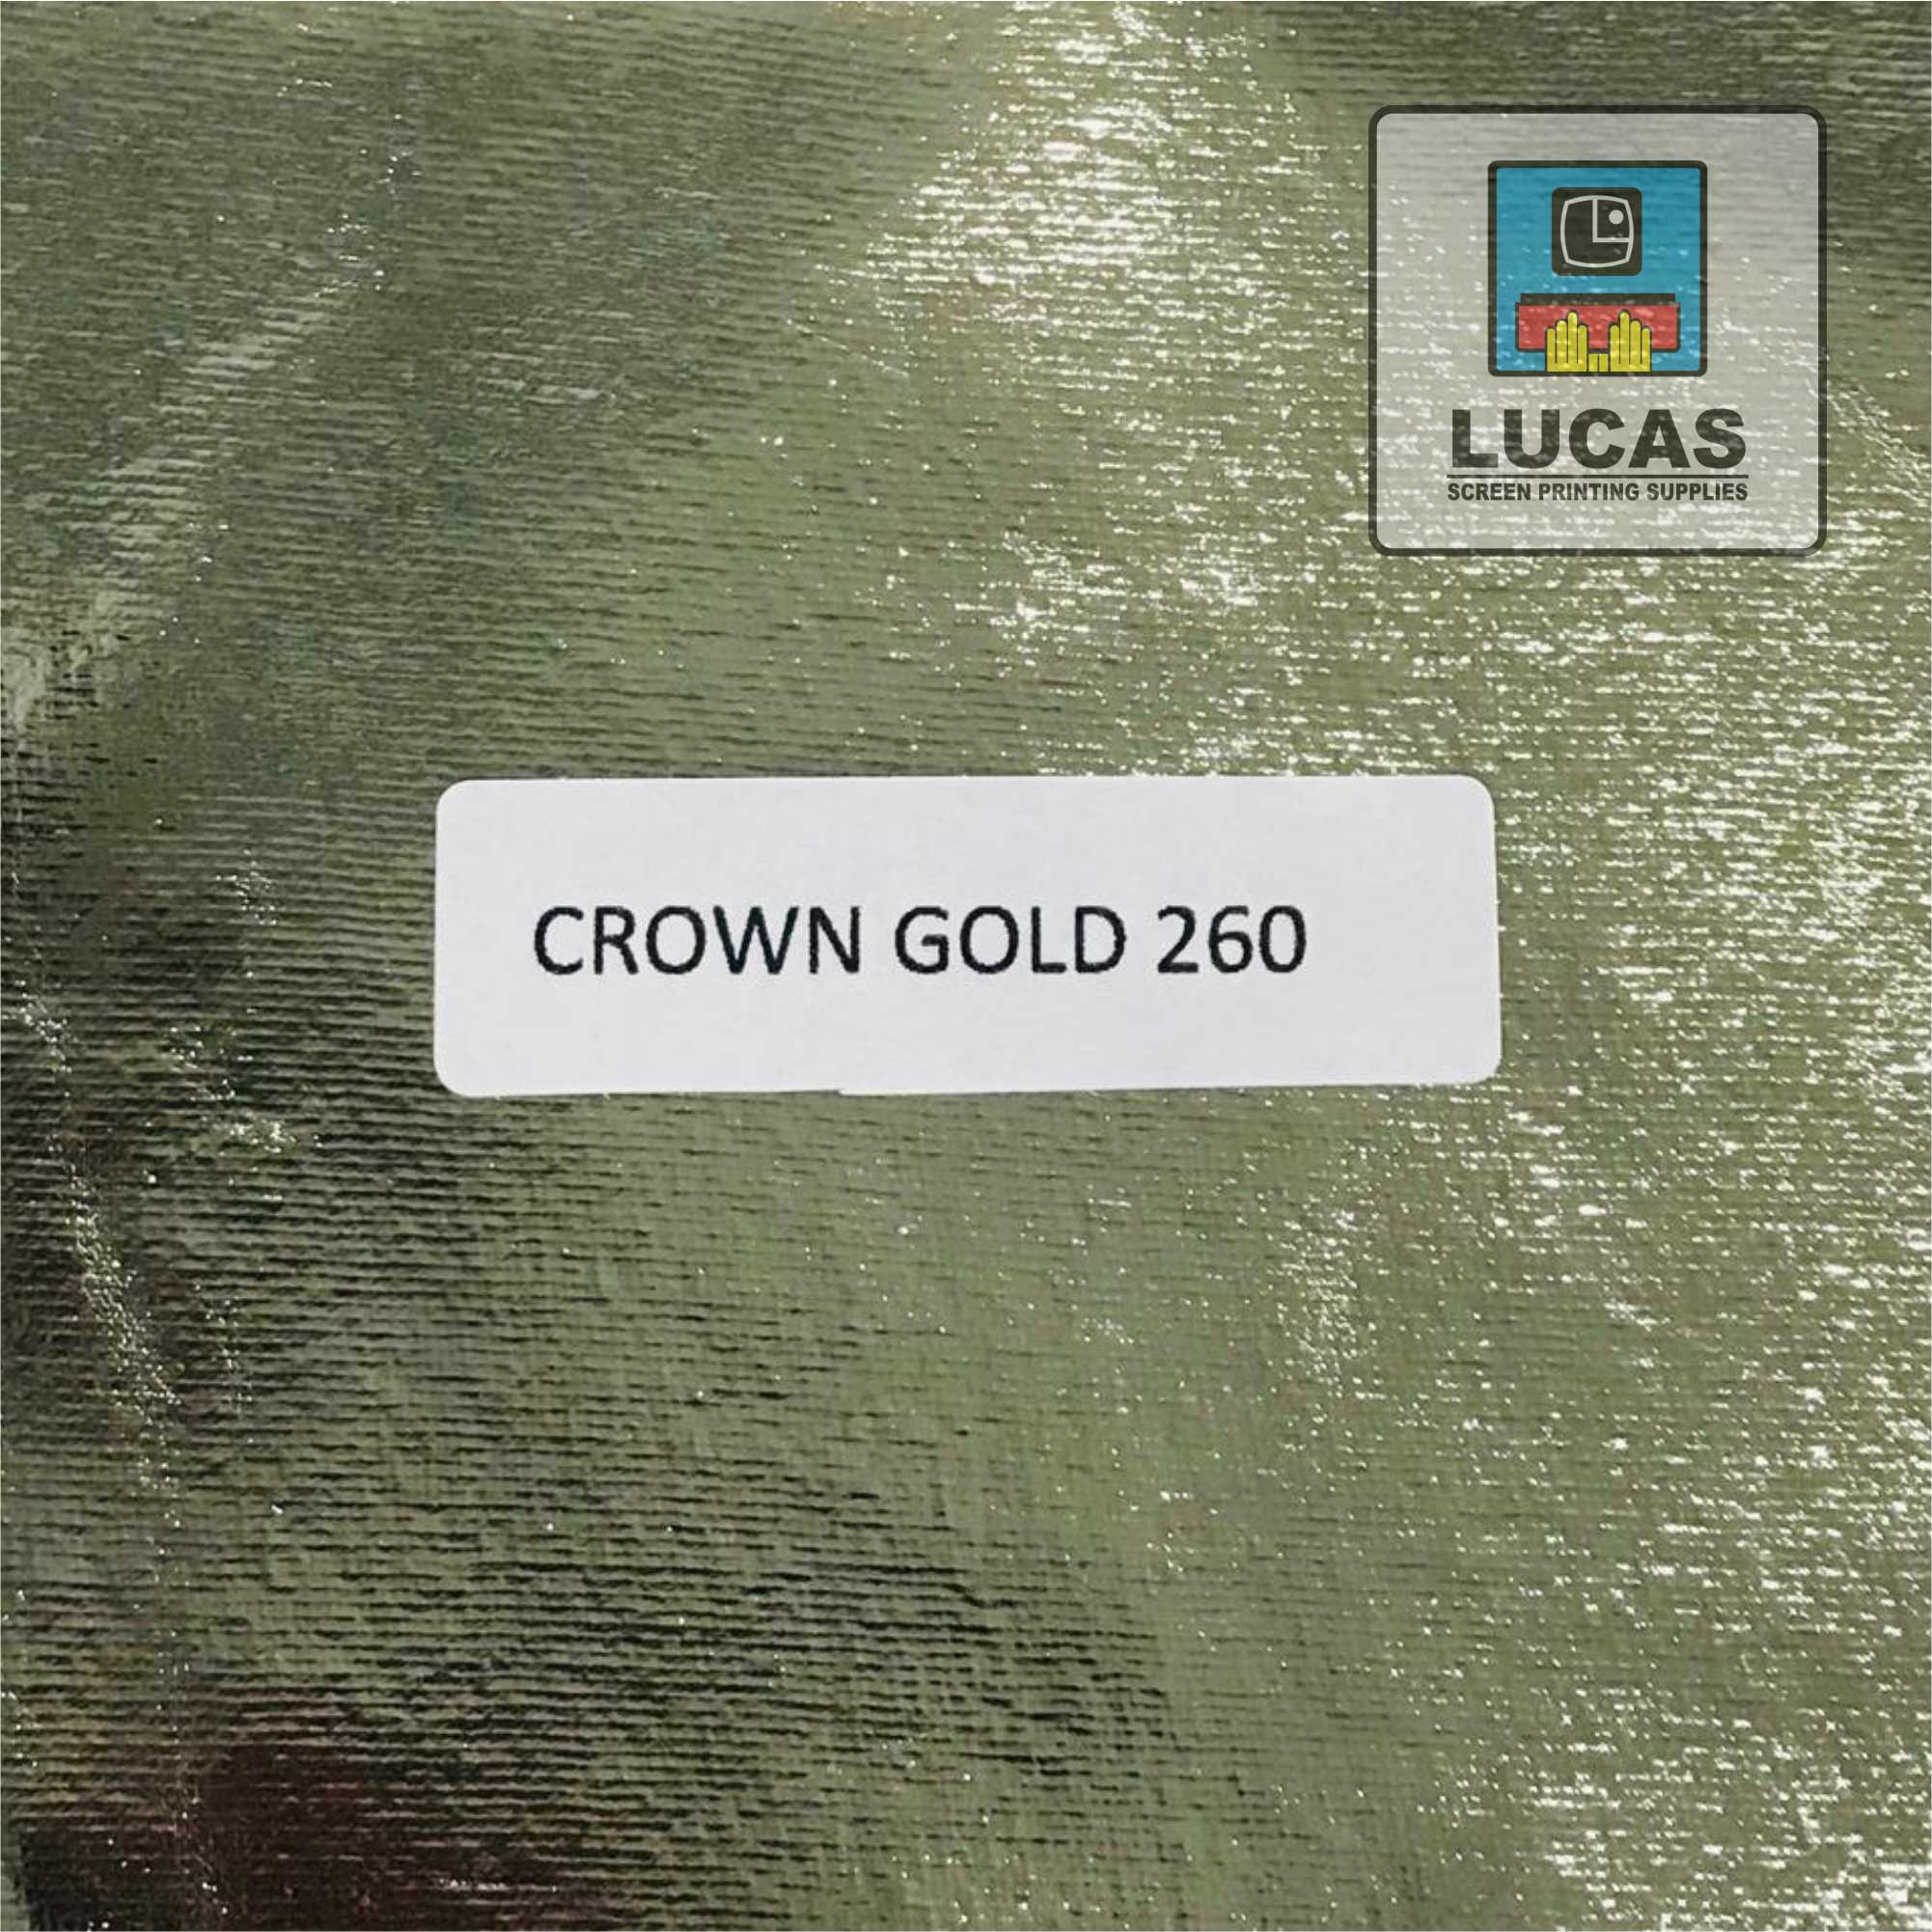 CROWN GOLD 260.jpg